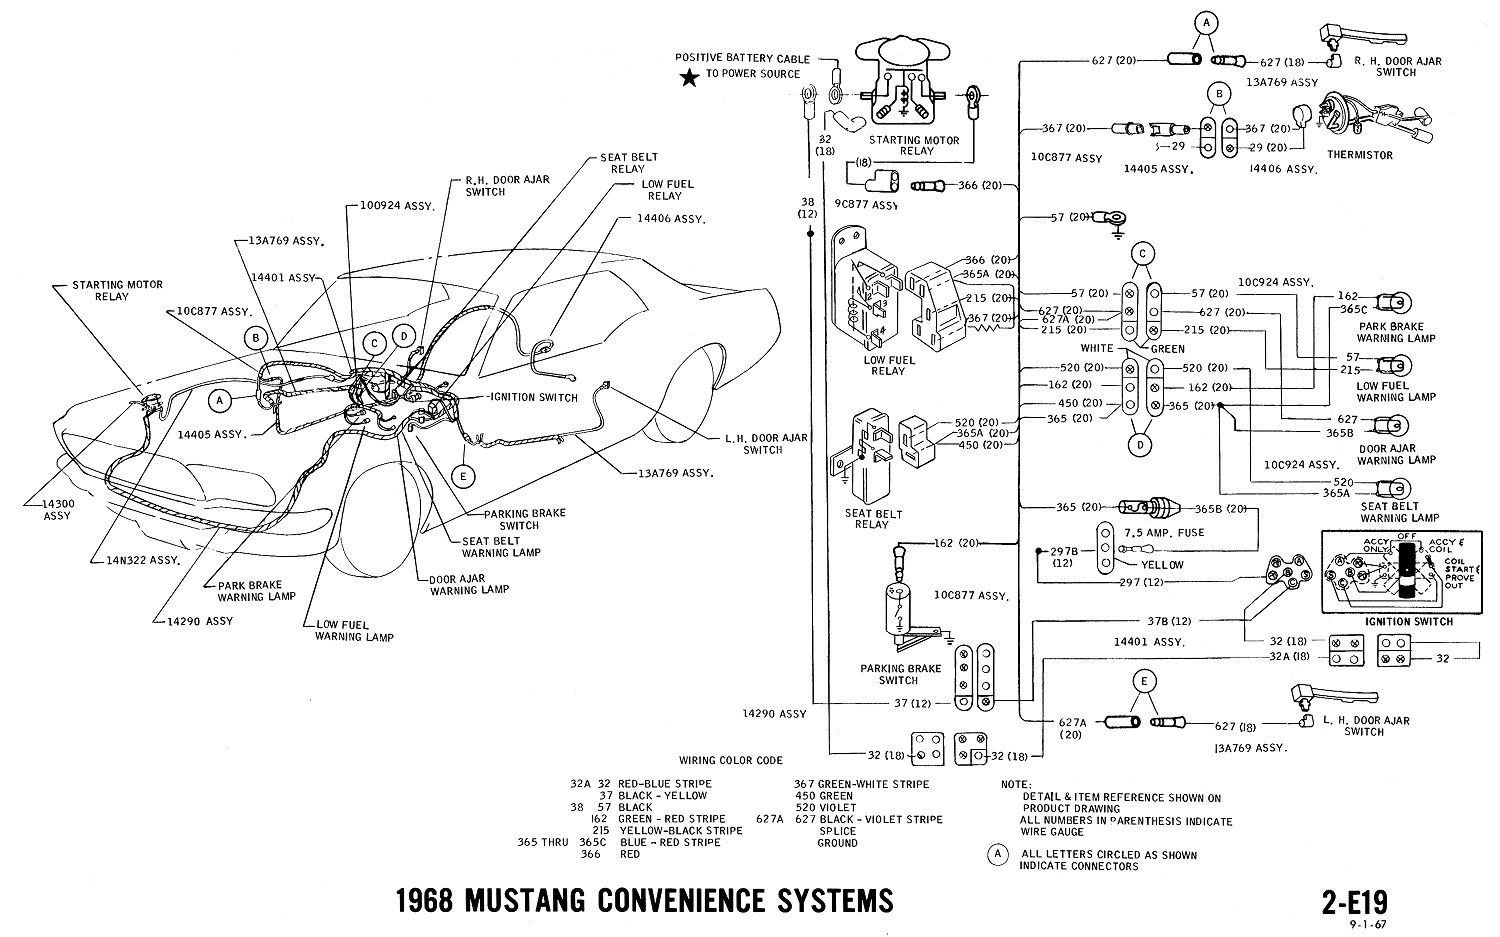 1968 mustang wiring diagram convenience systems 1968 mustang wiring diagram manual 68 mustang ignition wiring 1969 Mustang Wiring Diagram PDF at suagrazia.org